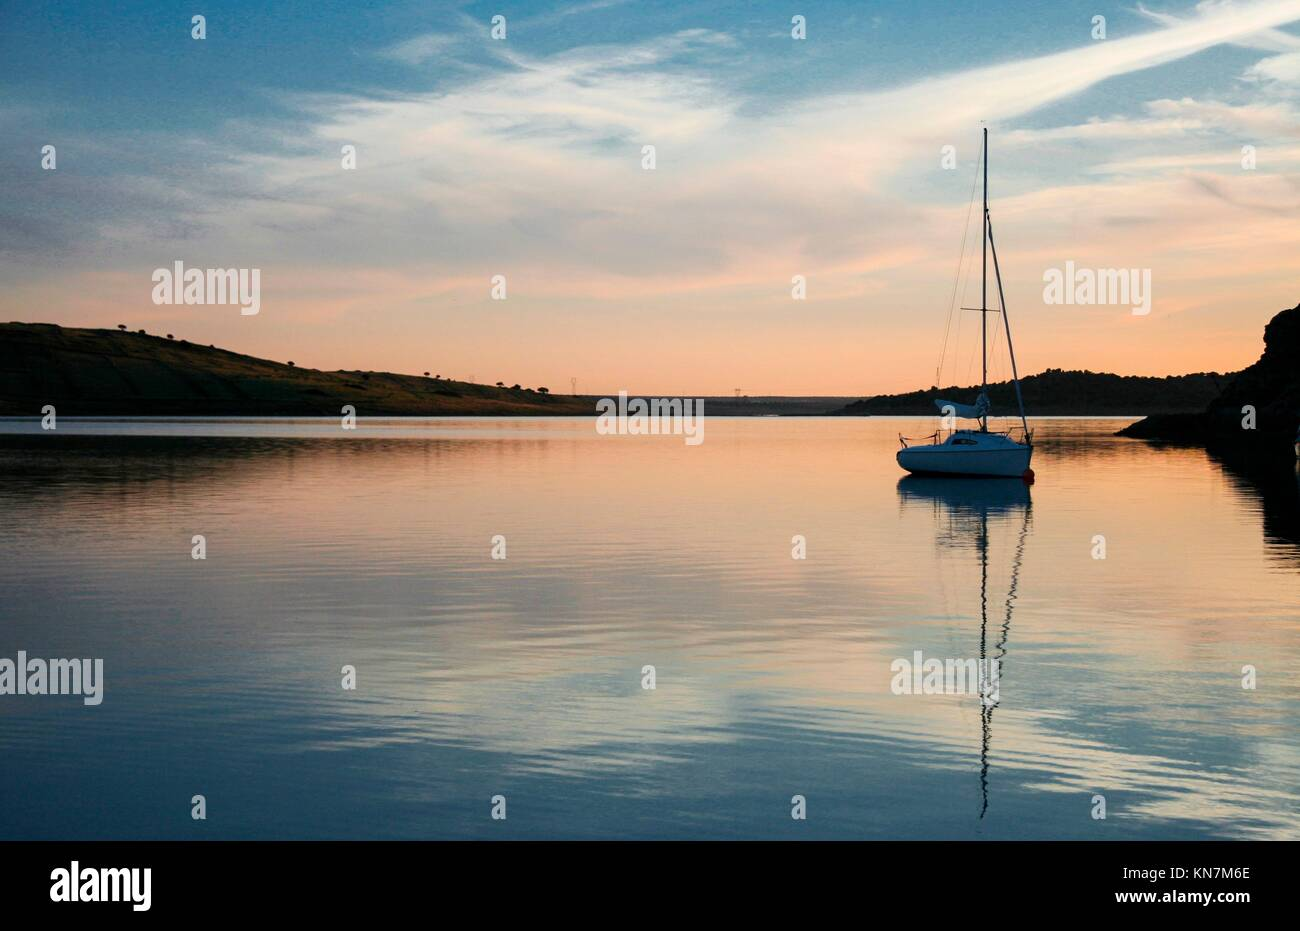 Sailboat anchored in the middle of Alange Reservoir, Spain. Sunset hour. - Stock Image